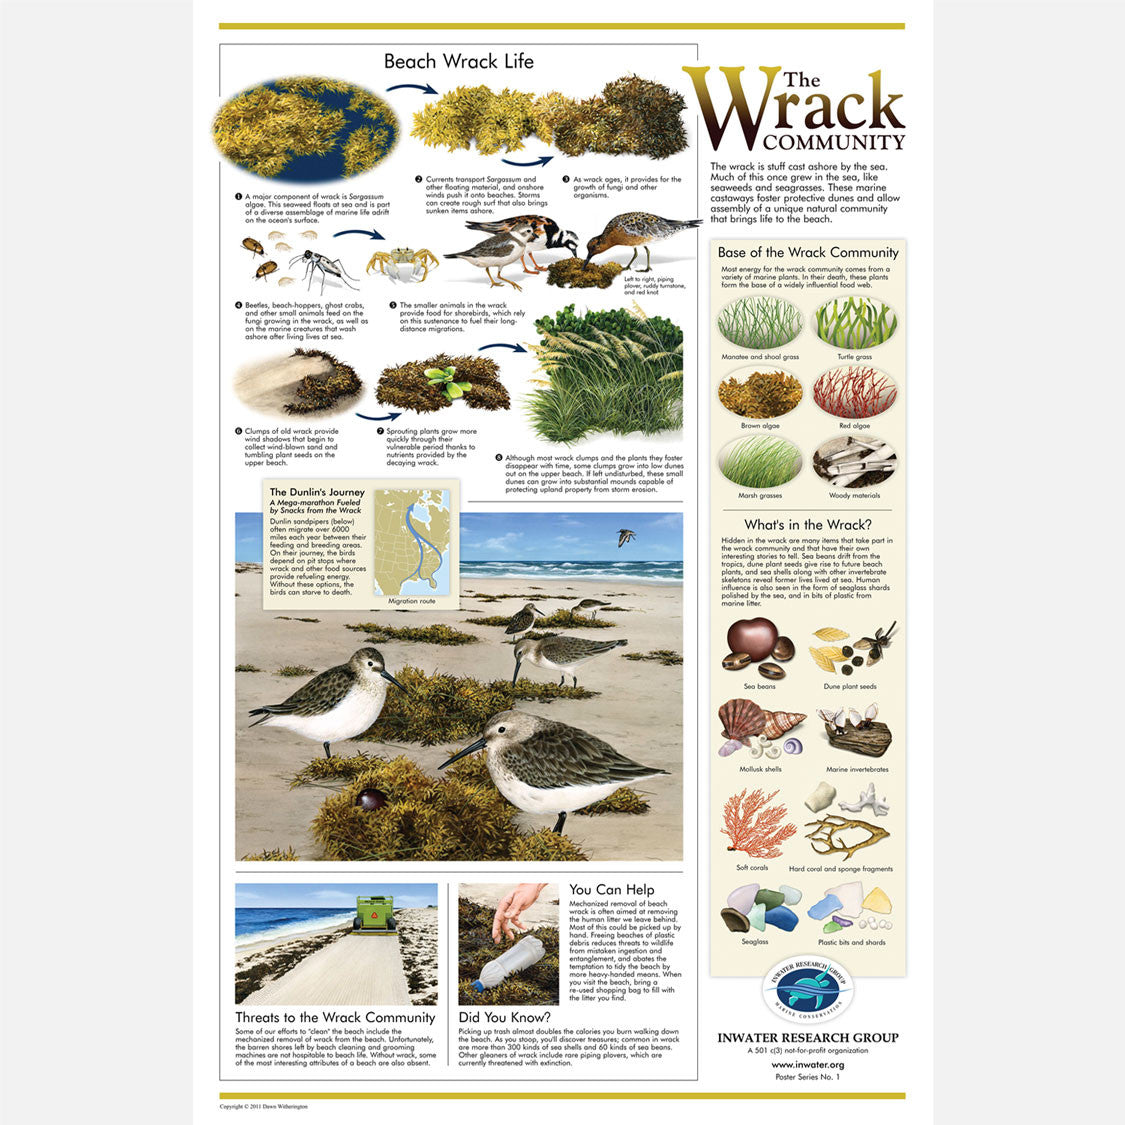 The Wrack Community poster